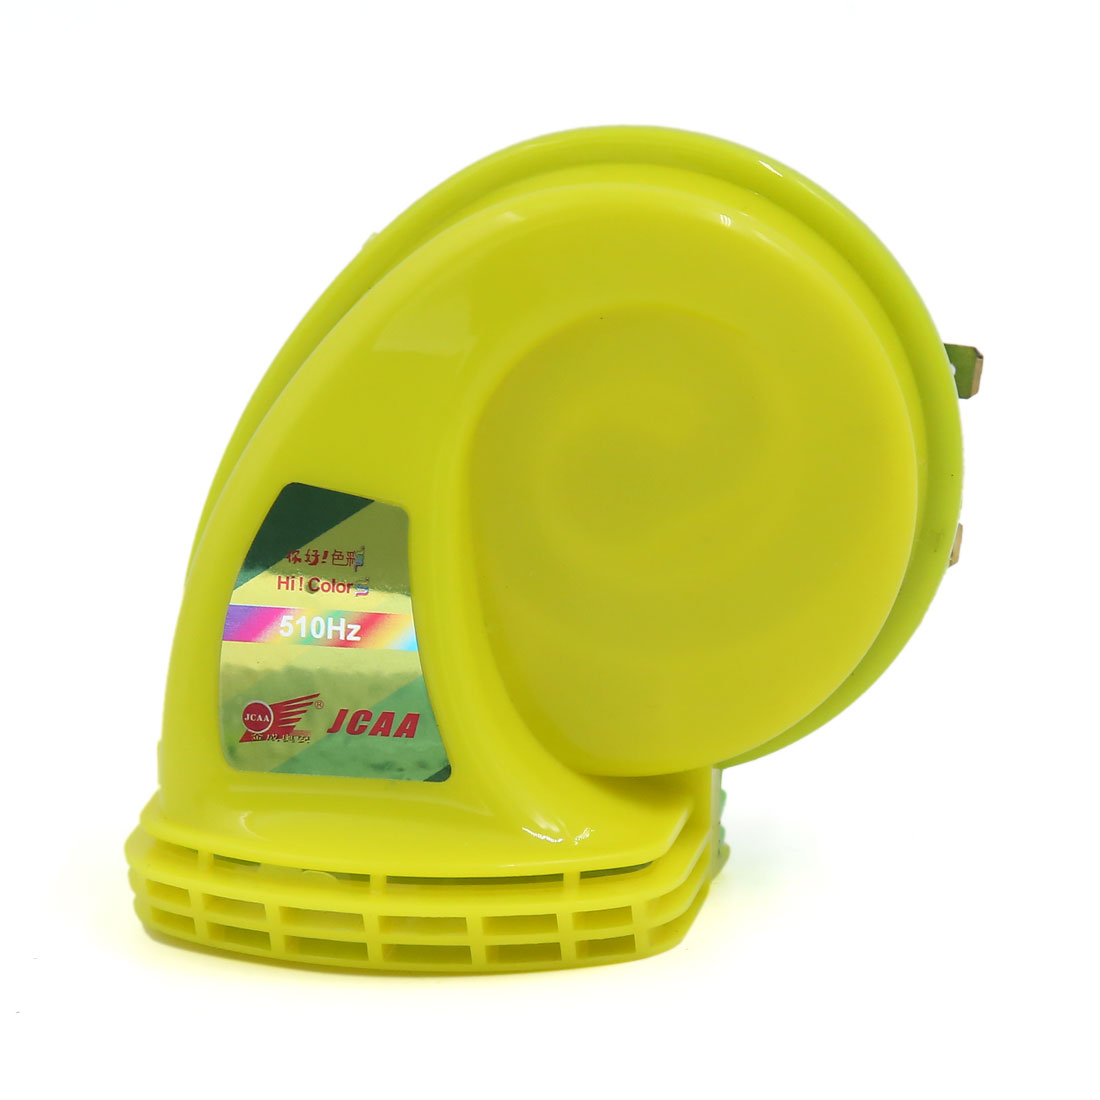 DB115 Yellow Green Metal Plastic Electric Siren Snail Shaped Motorcycle Horn